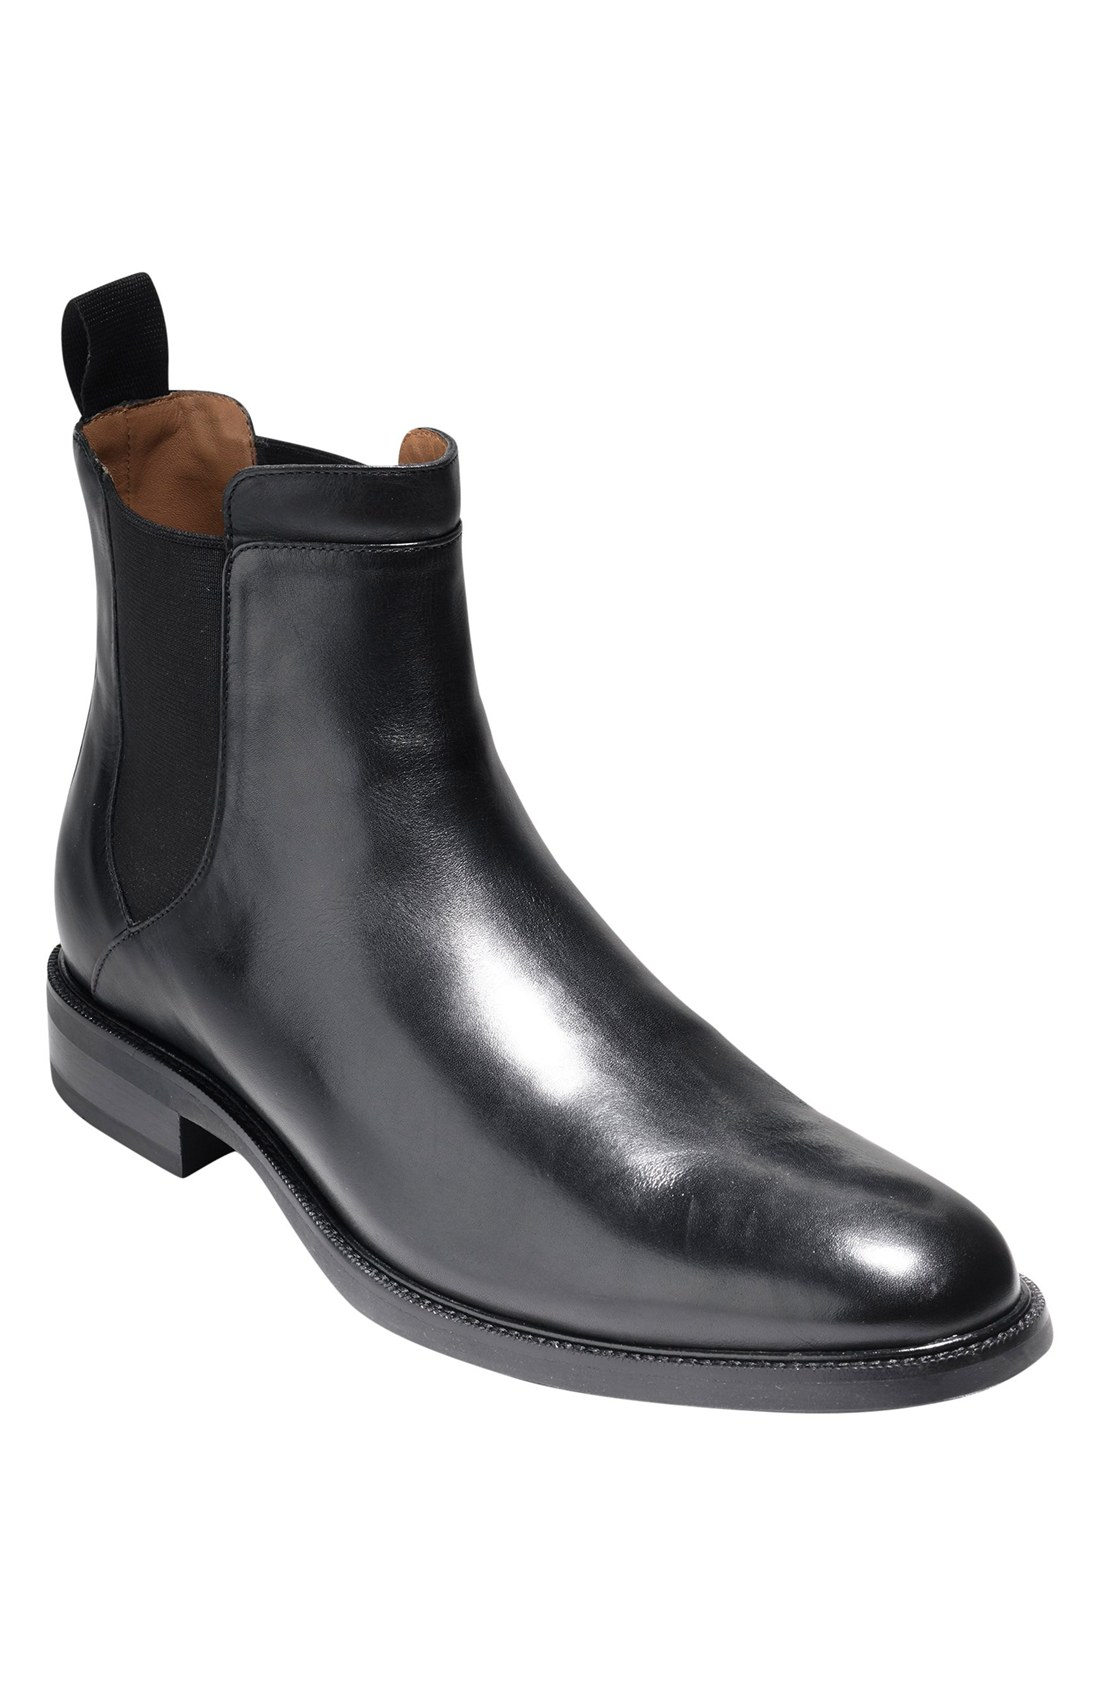 Black Chelsea Boots Men Y9jJD2IP